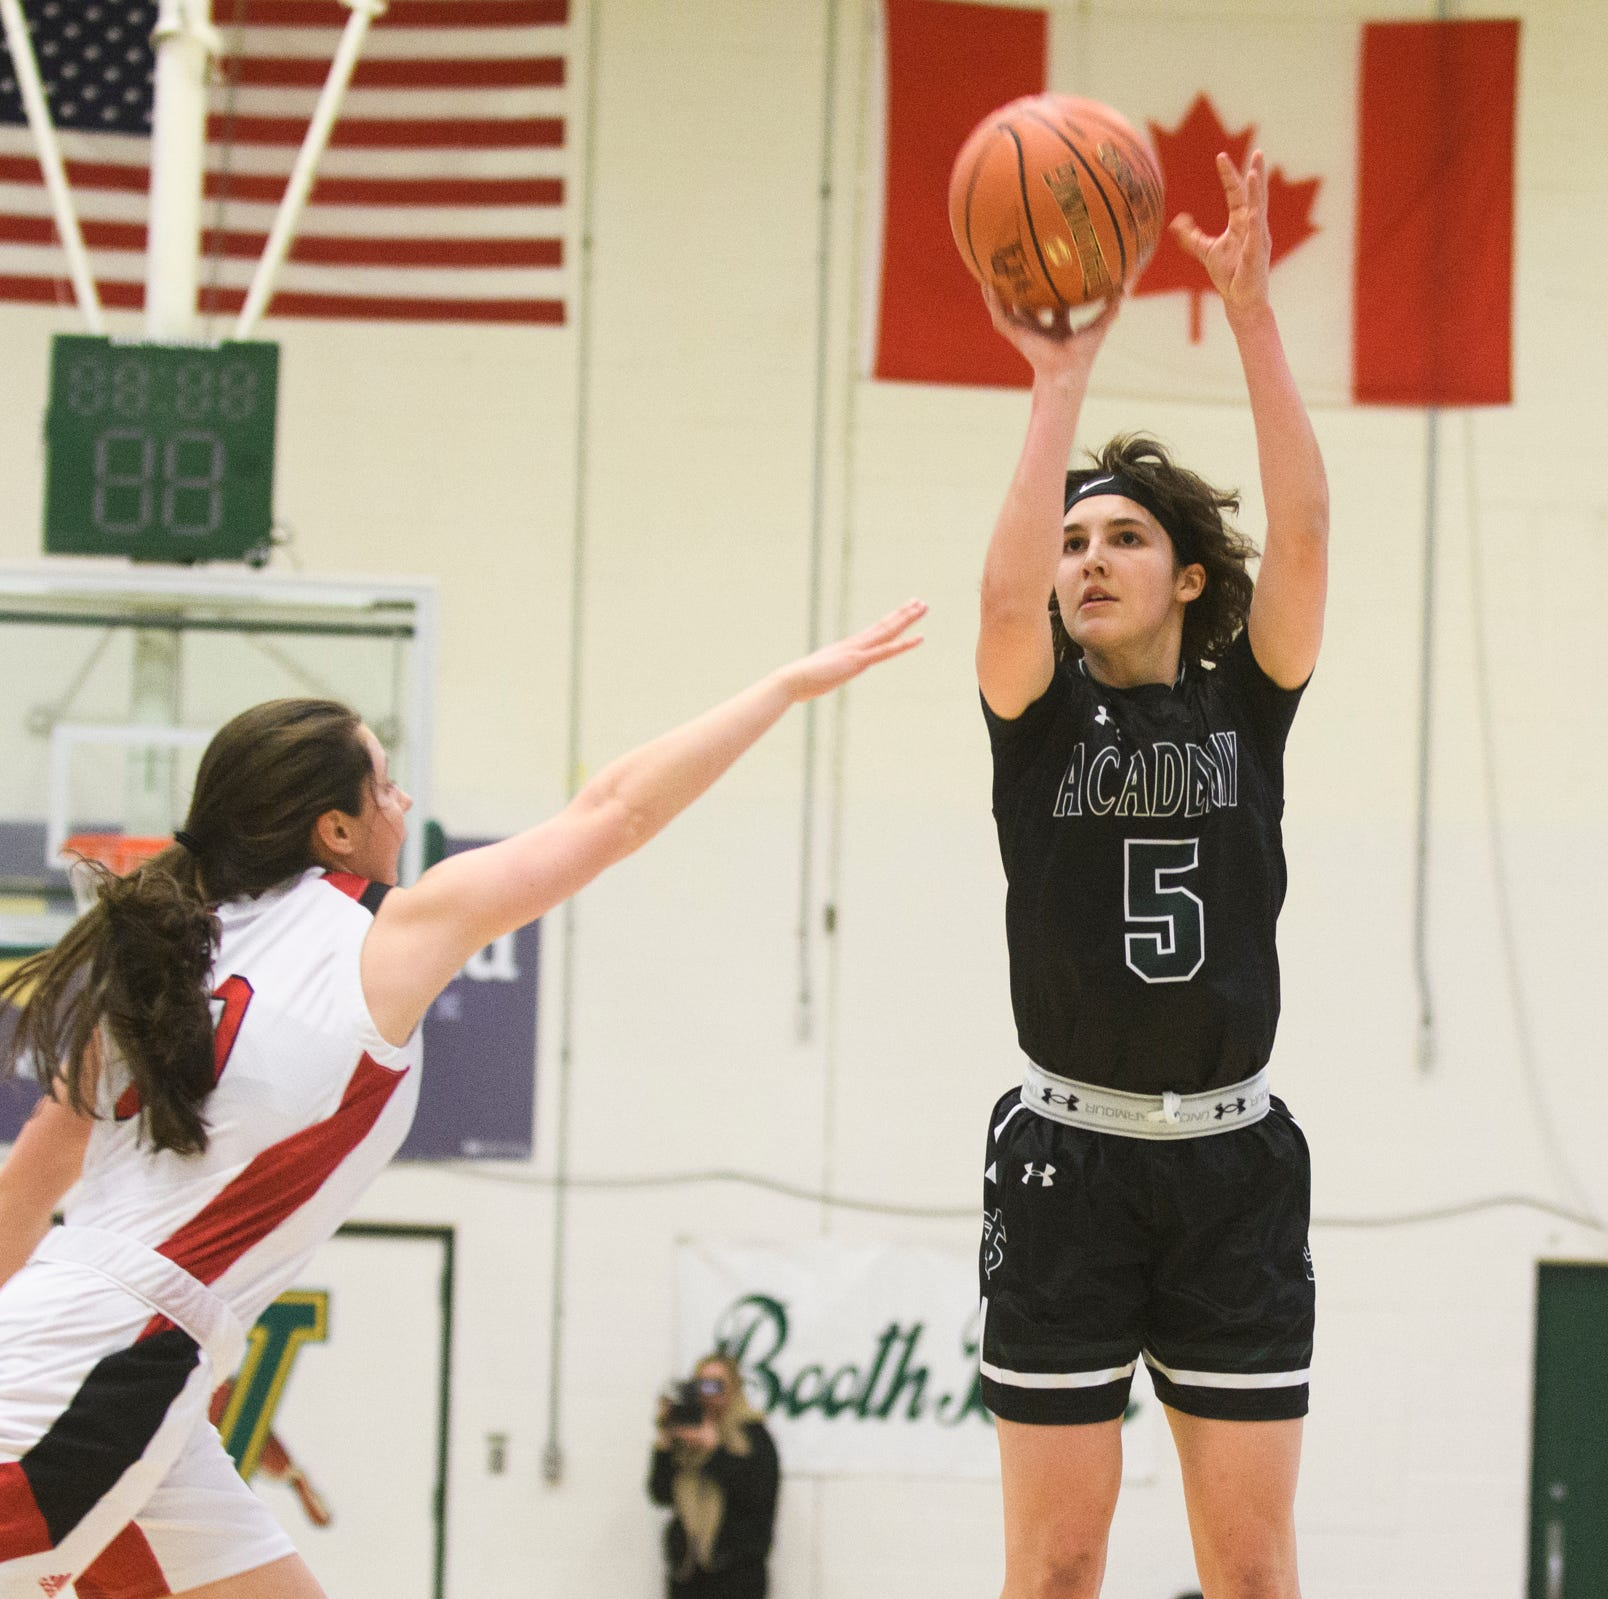 St. Johnsbury's Sadie Stetson (5) shoots the ball during the division I girls basketball championship basketball game between the St. Johnsbury Hilltoppers and the Champlain Valley Union Redhawks at Patrick Gym on Sunday afternoon March 10, 2019 in Burlington, Vermont.